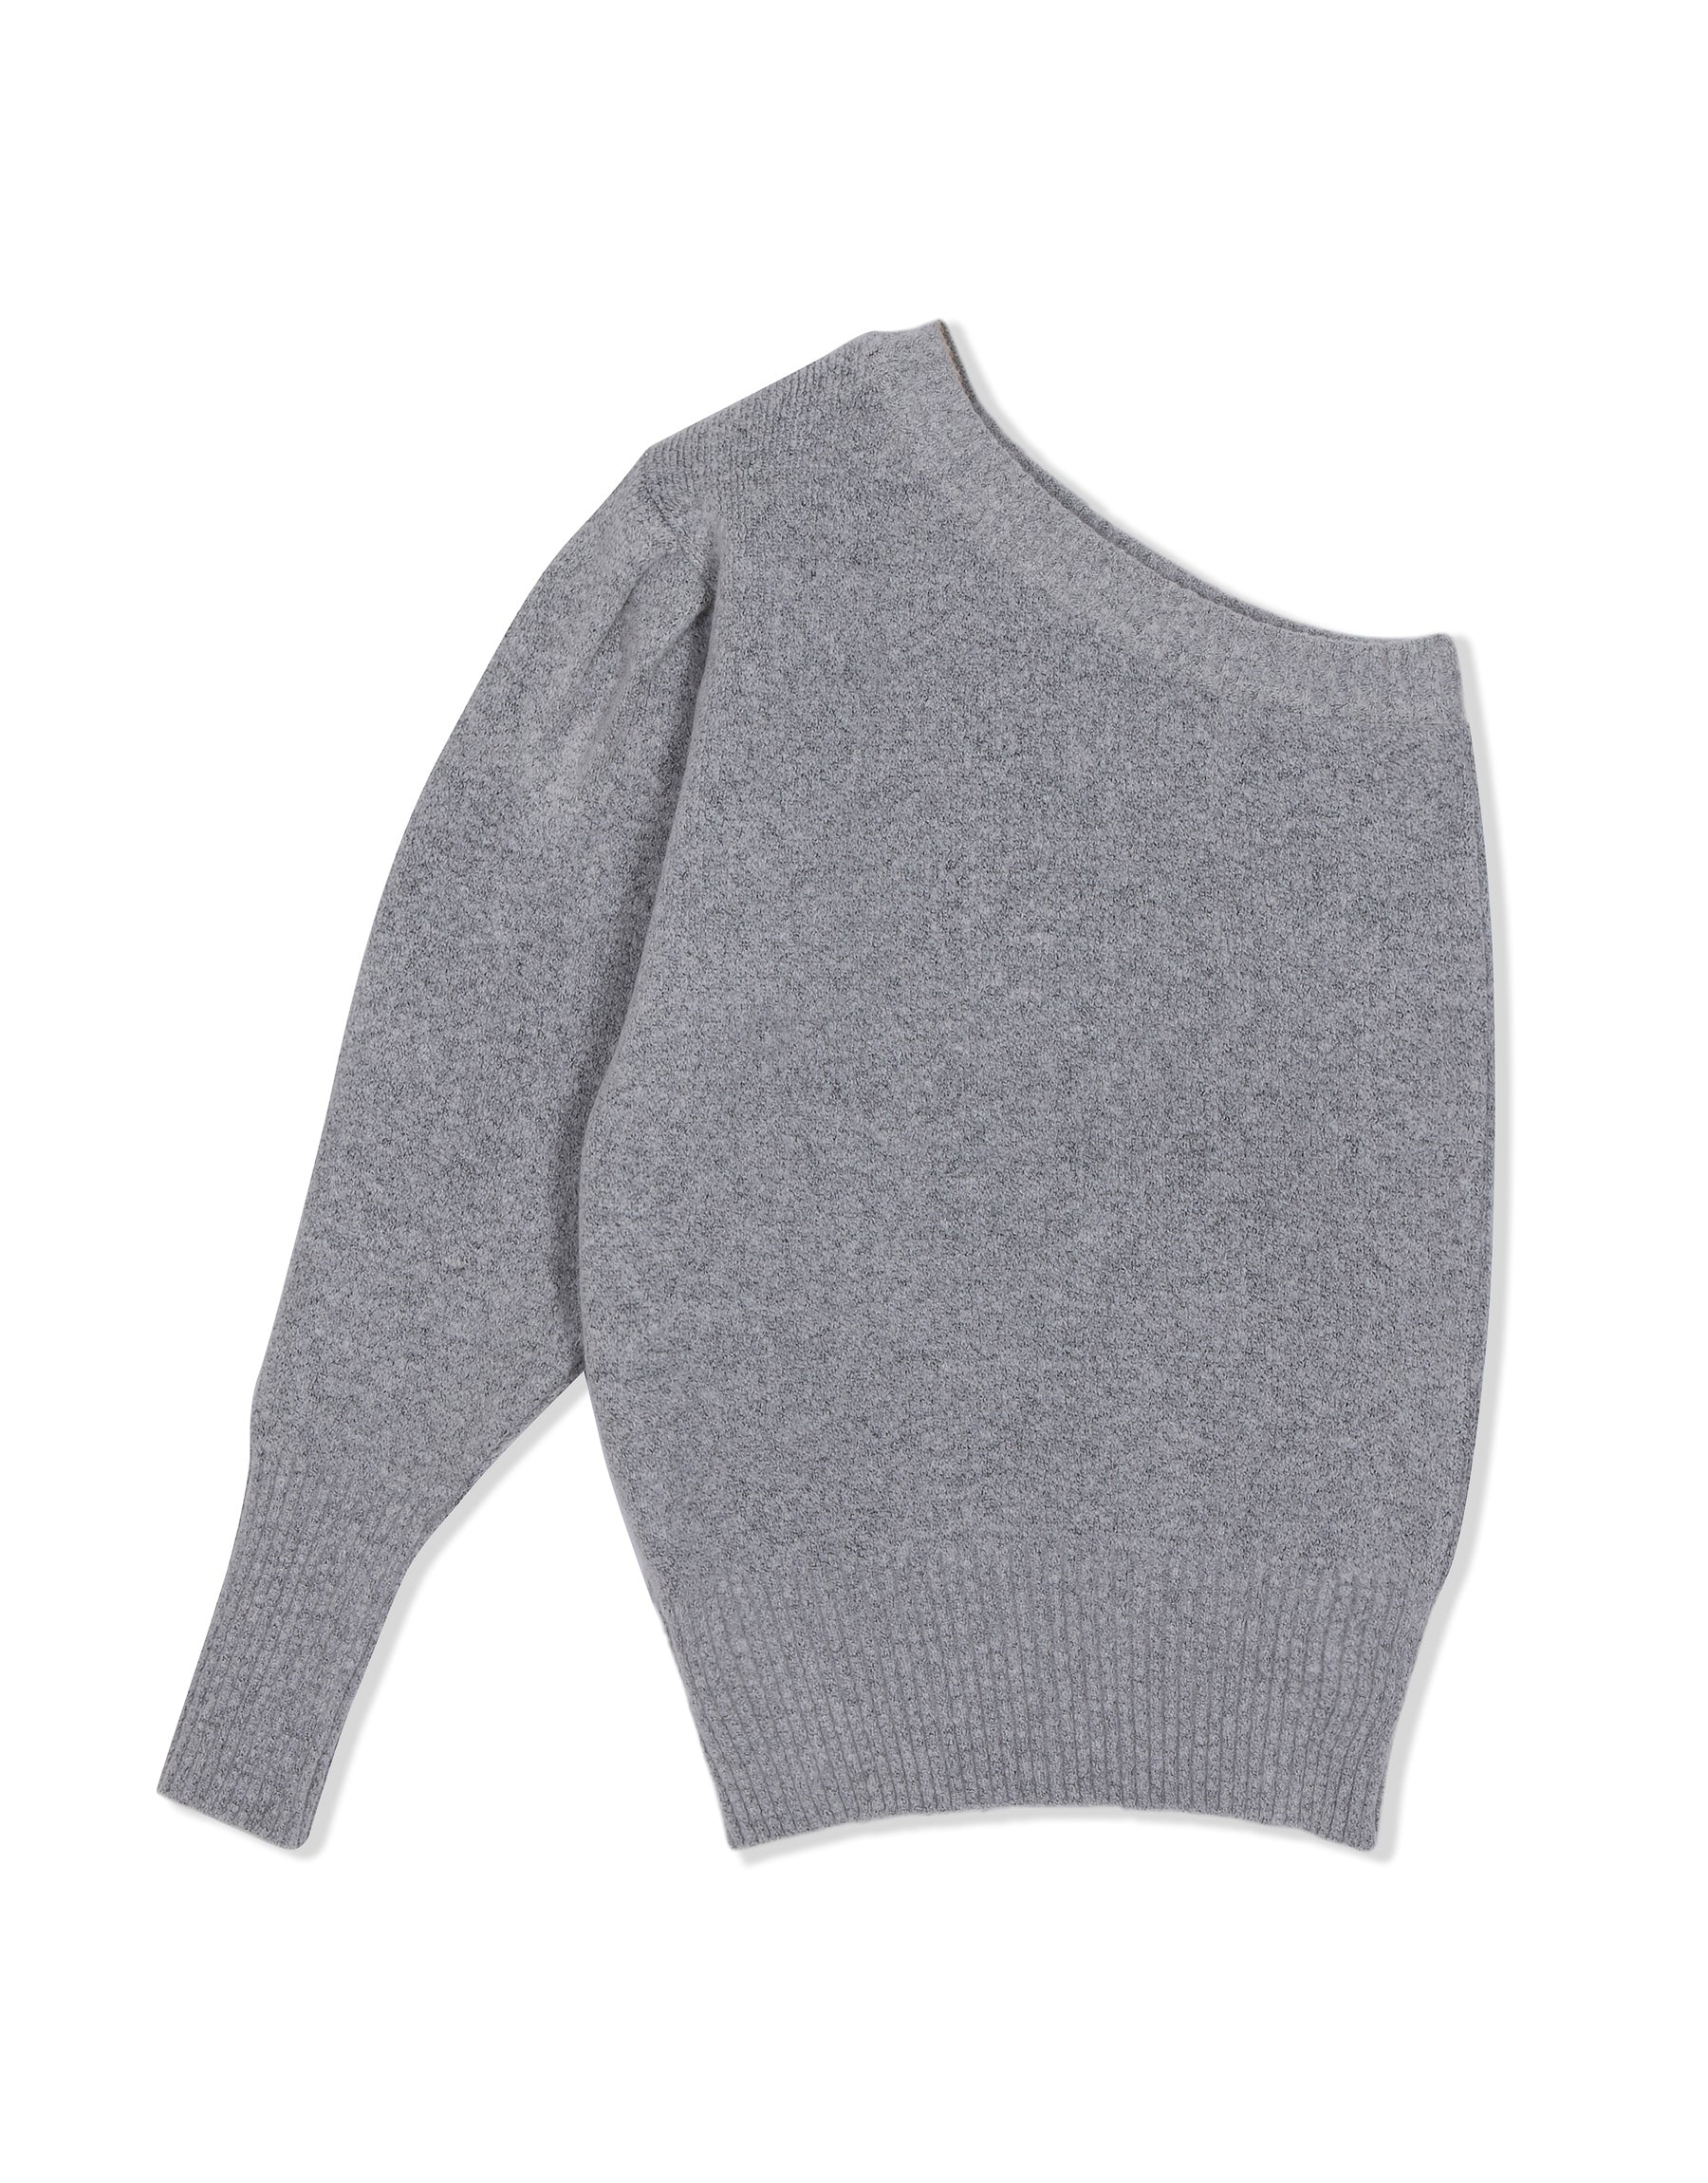 Knitwear from KVDWKND, One Shoulder Jersey in grey. New by Kat van Duinen.